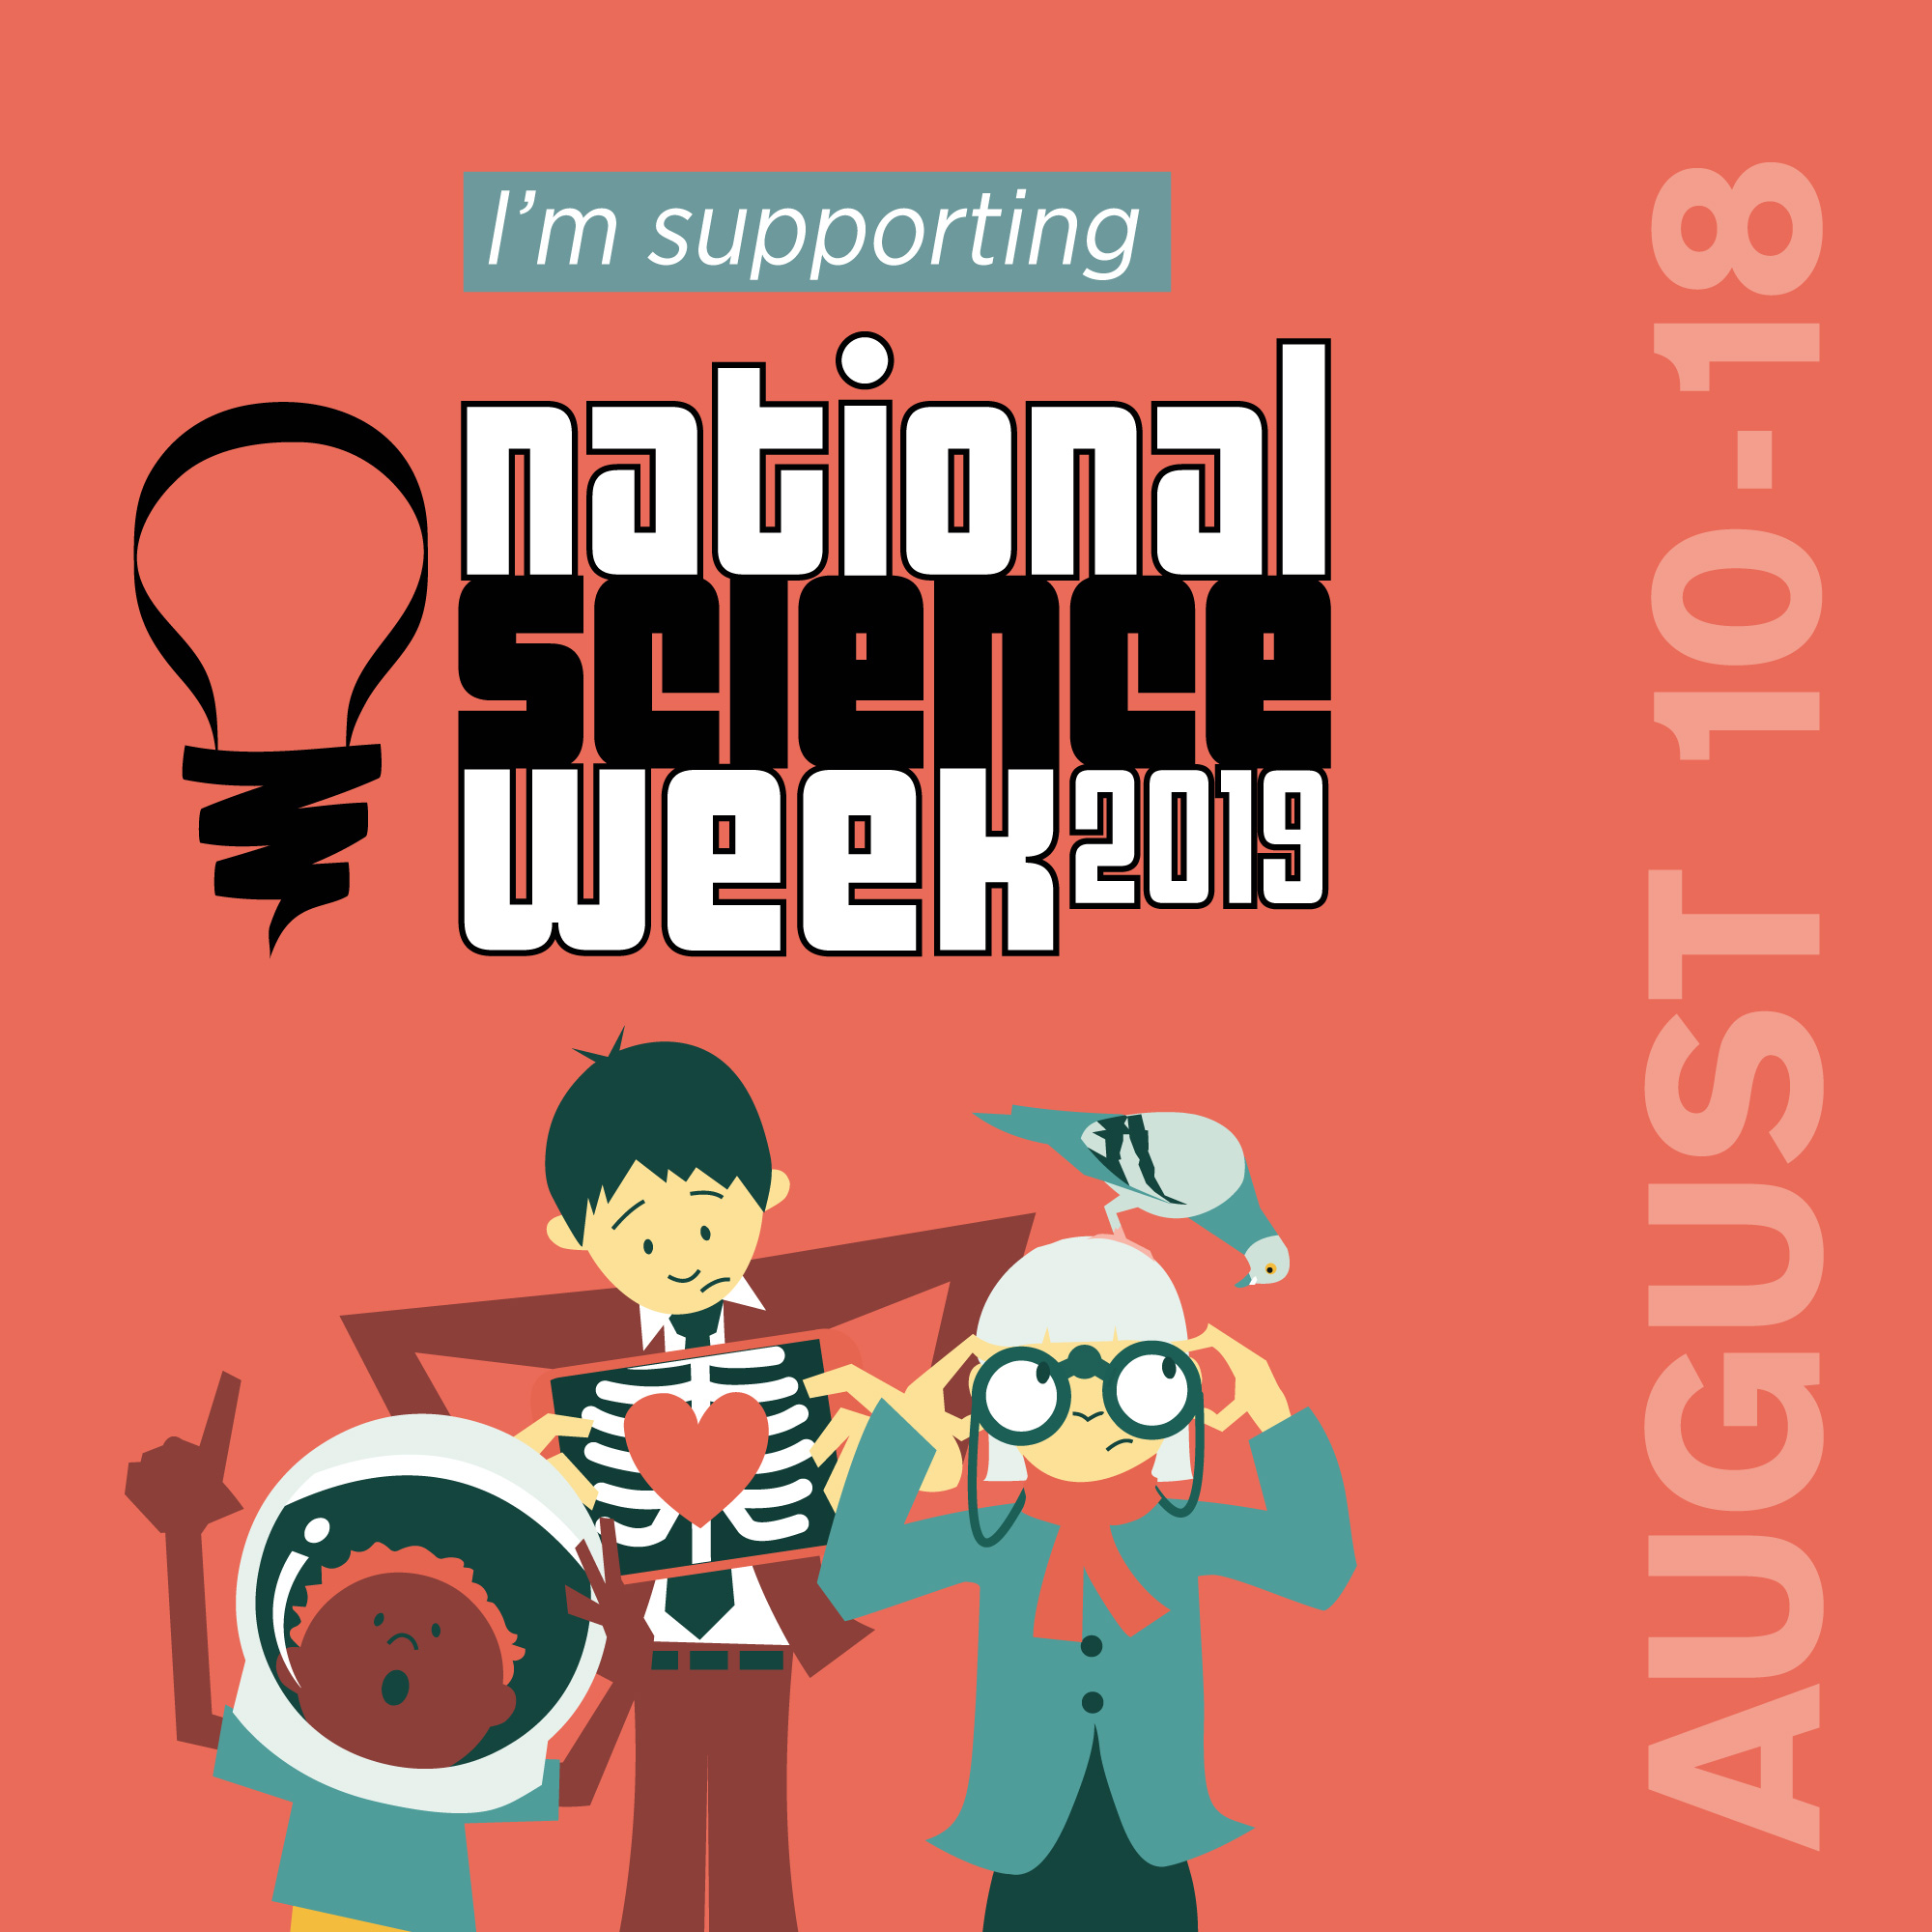 National-Science-Week-Social-Graphic.jpg